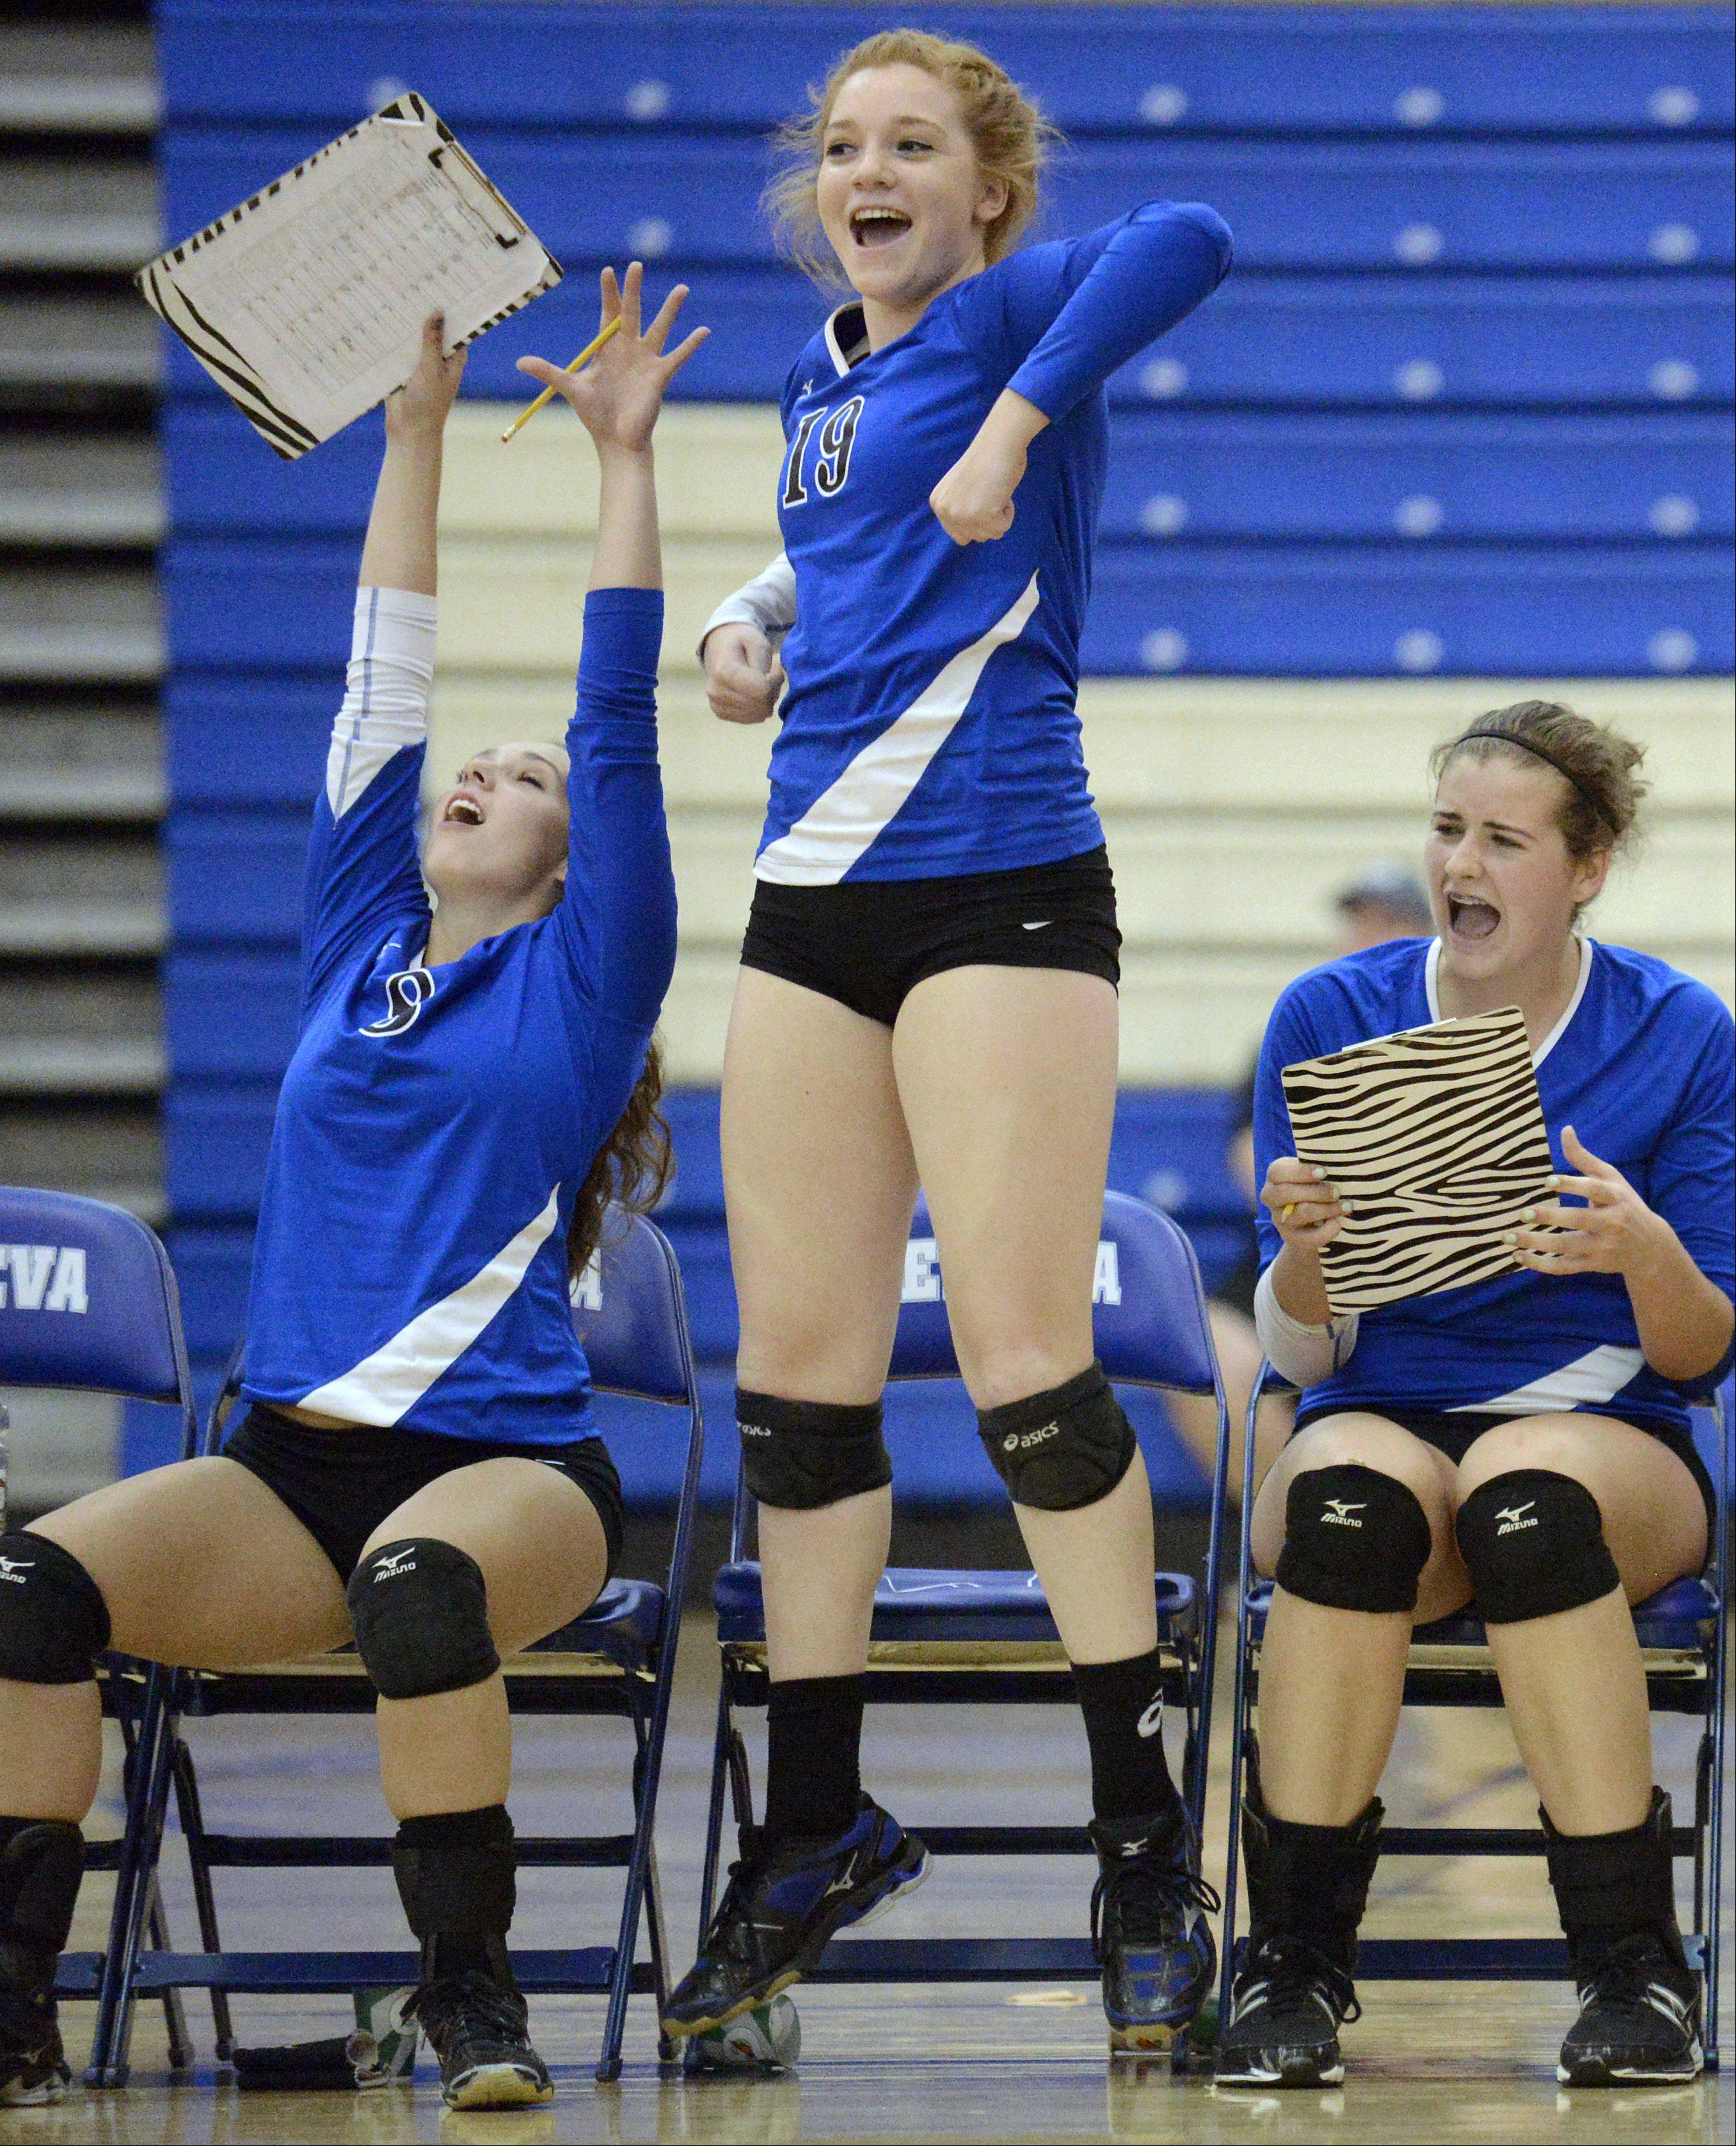 Left to right, Geneva's Hailee Hilmer, Camille Kolquist and Ally Barrett celebrate each point as they get closer to winning the nail-biter of a game in the final match vs. St. Charles North on Tuesday, September 24.